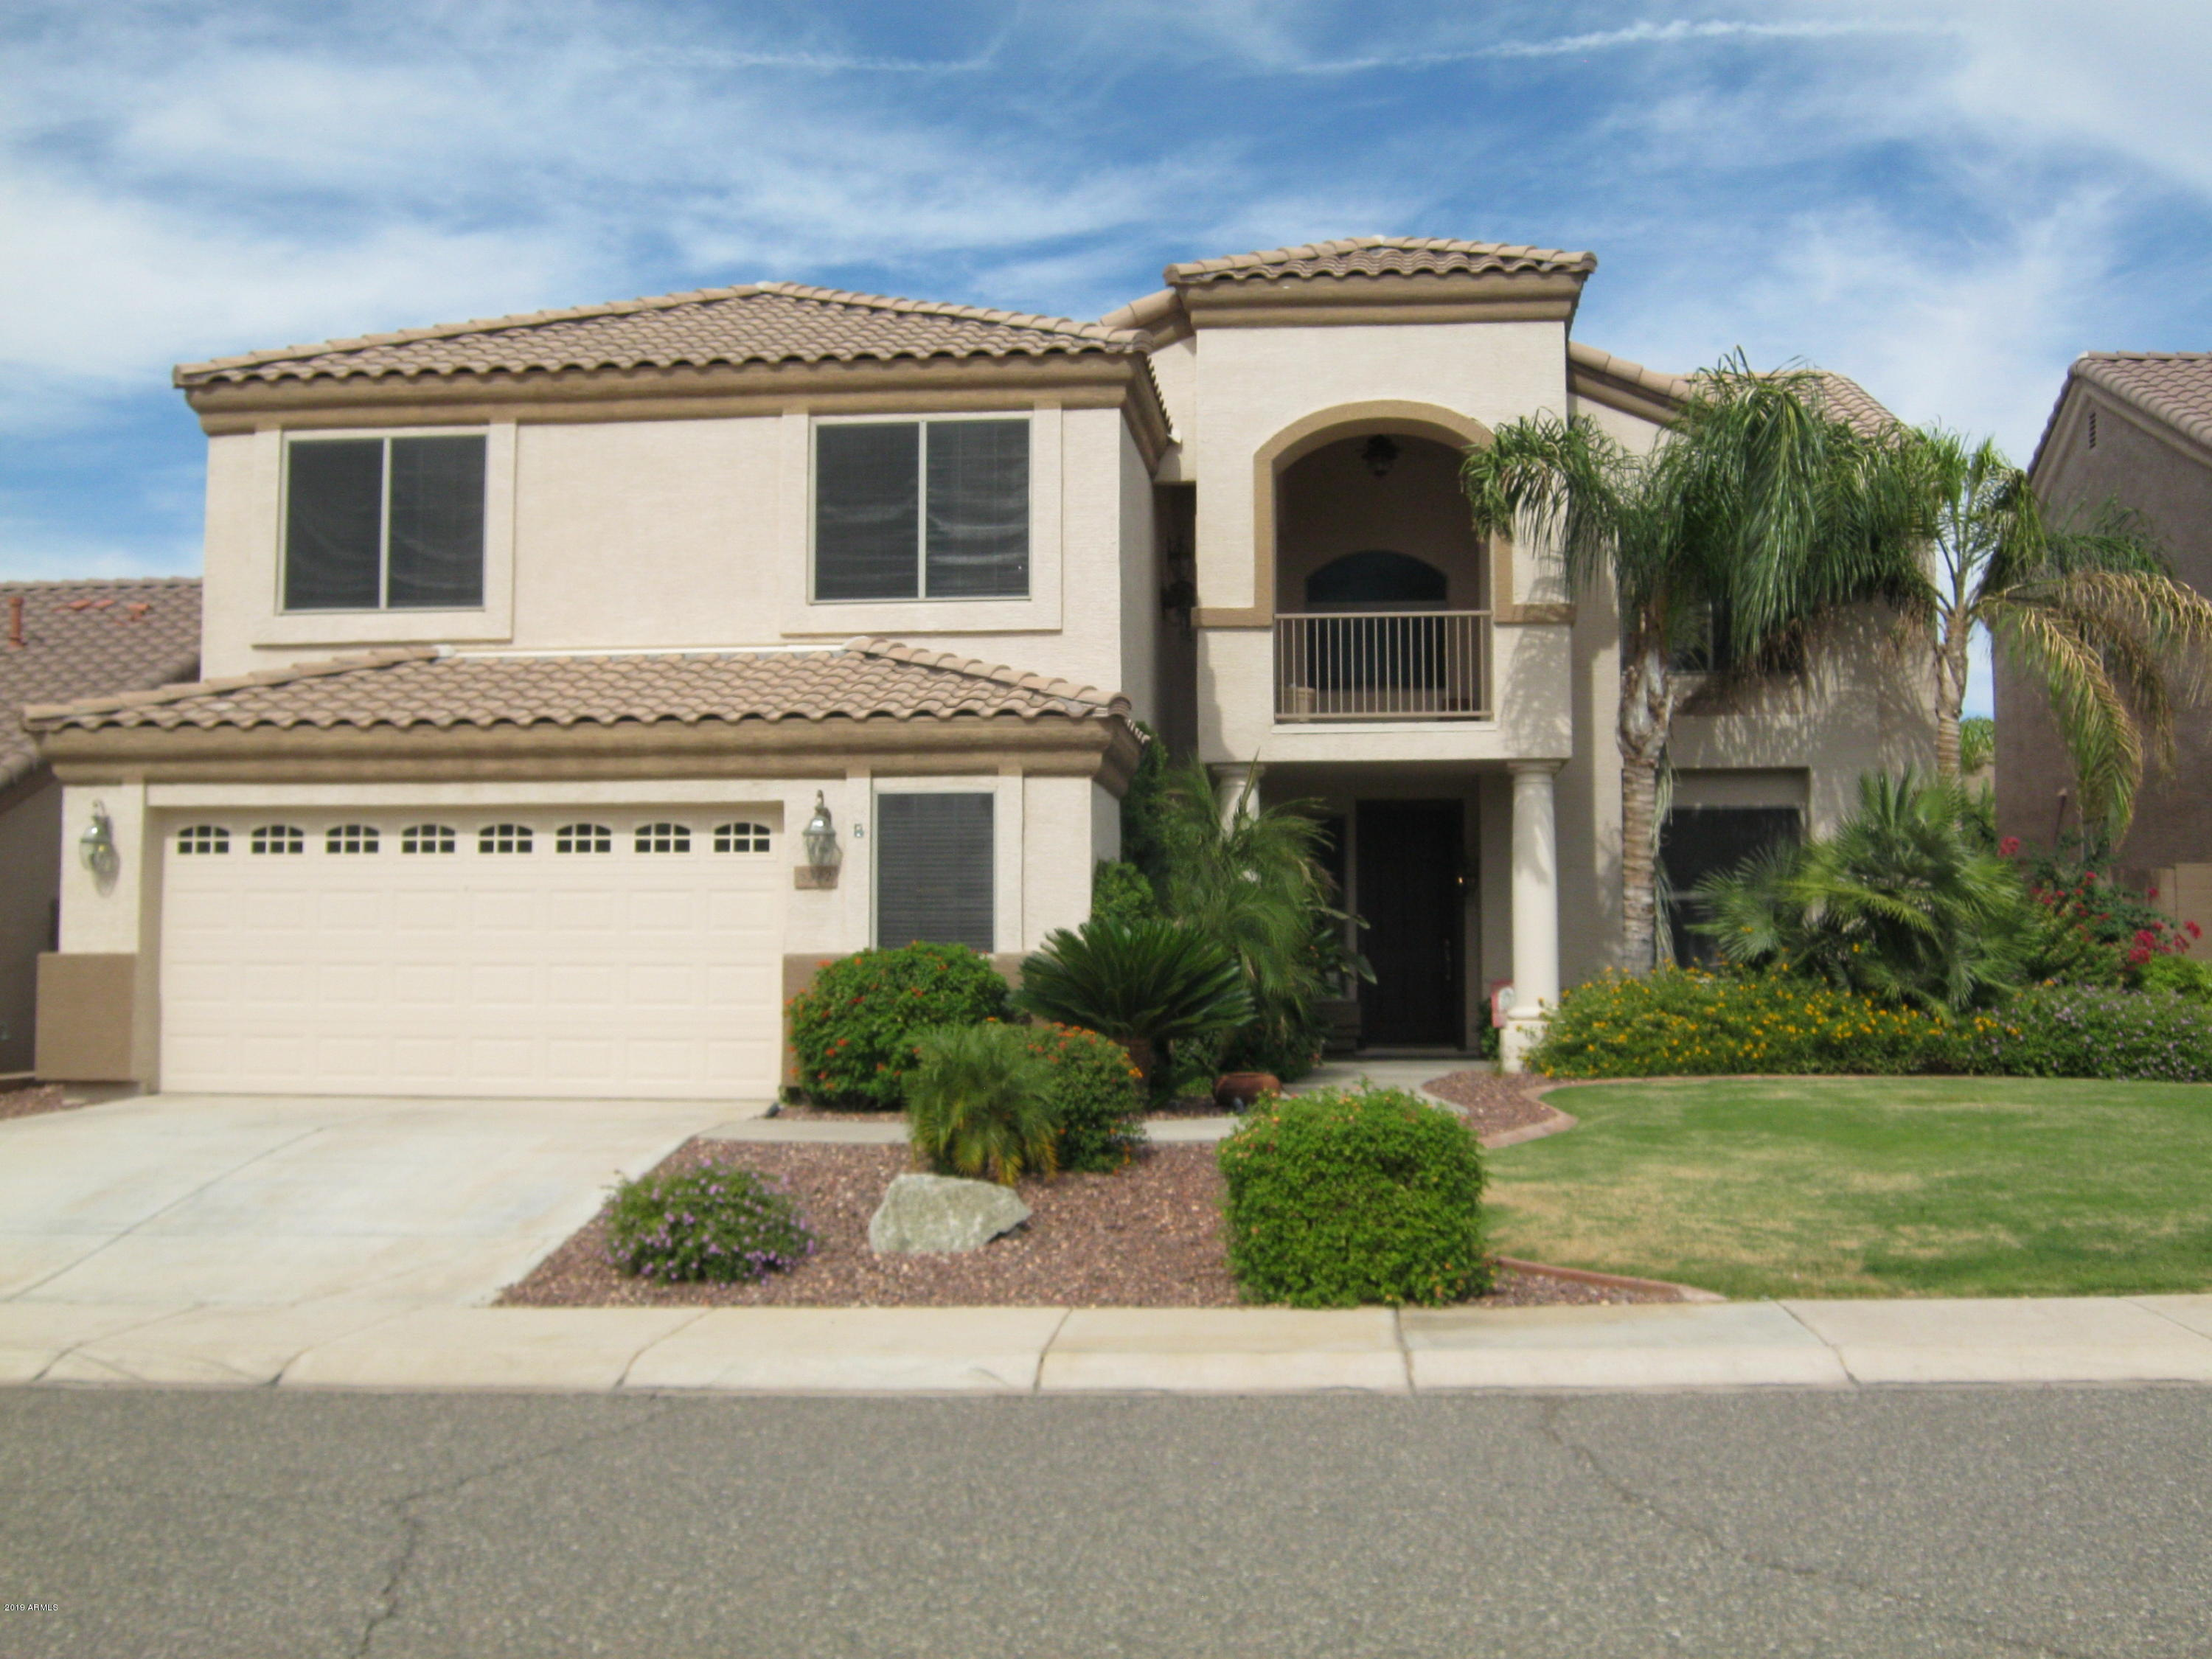 Photo for 6342 W Hackamore Drive, Phoenix, AZ 85083 (MLS # 5897639)